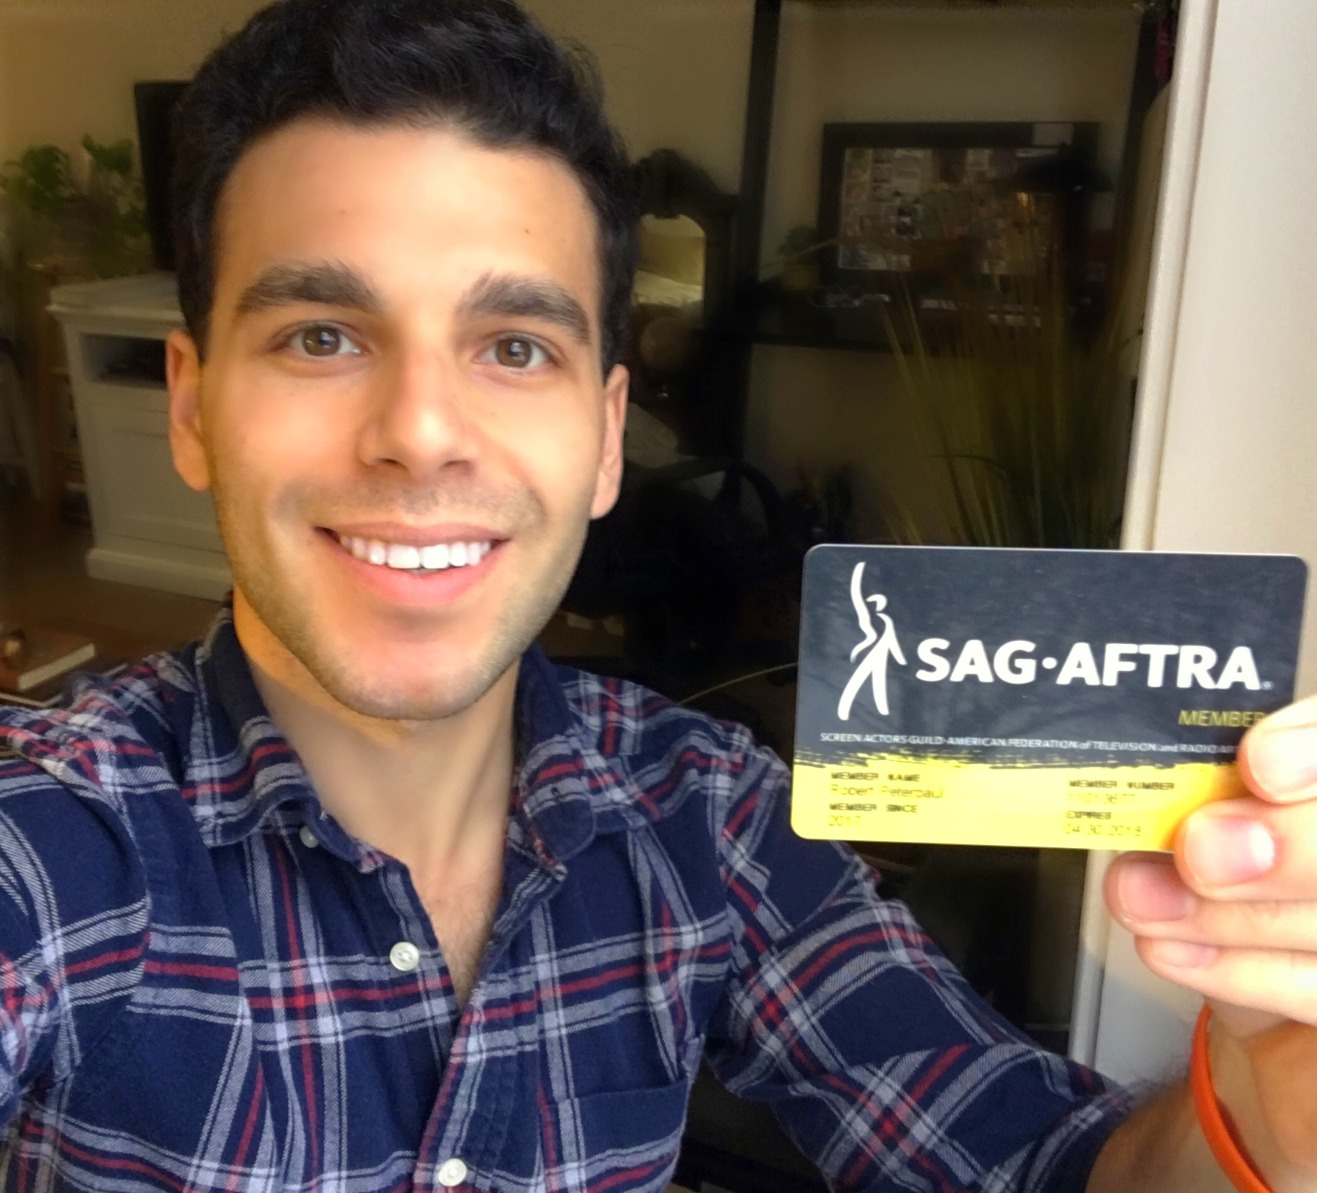 Officially SAG-AFTRA!